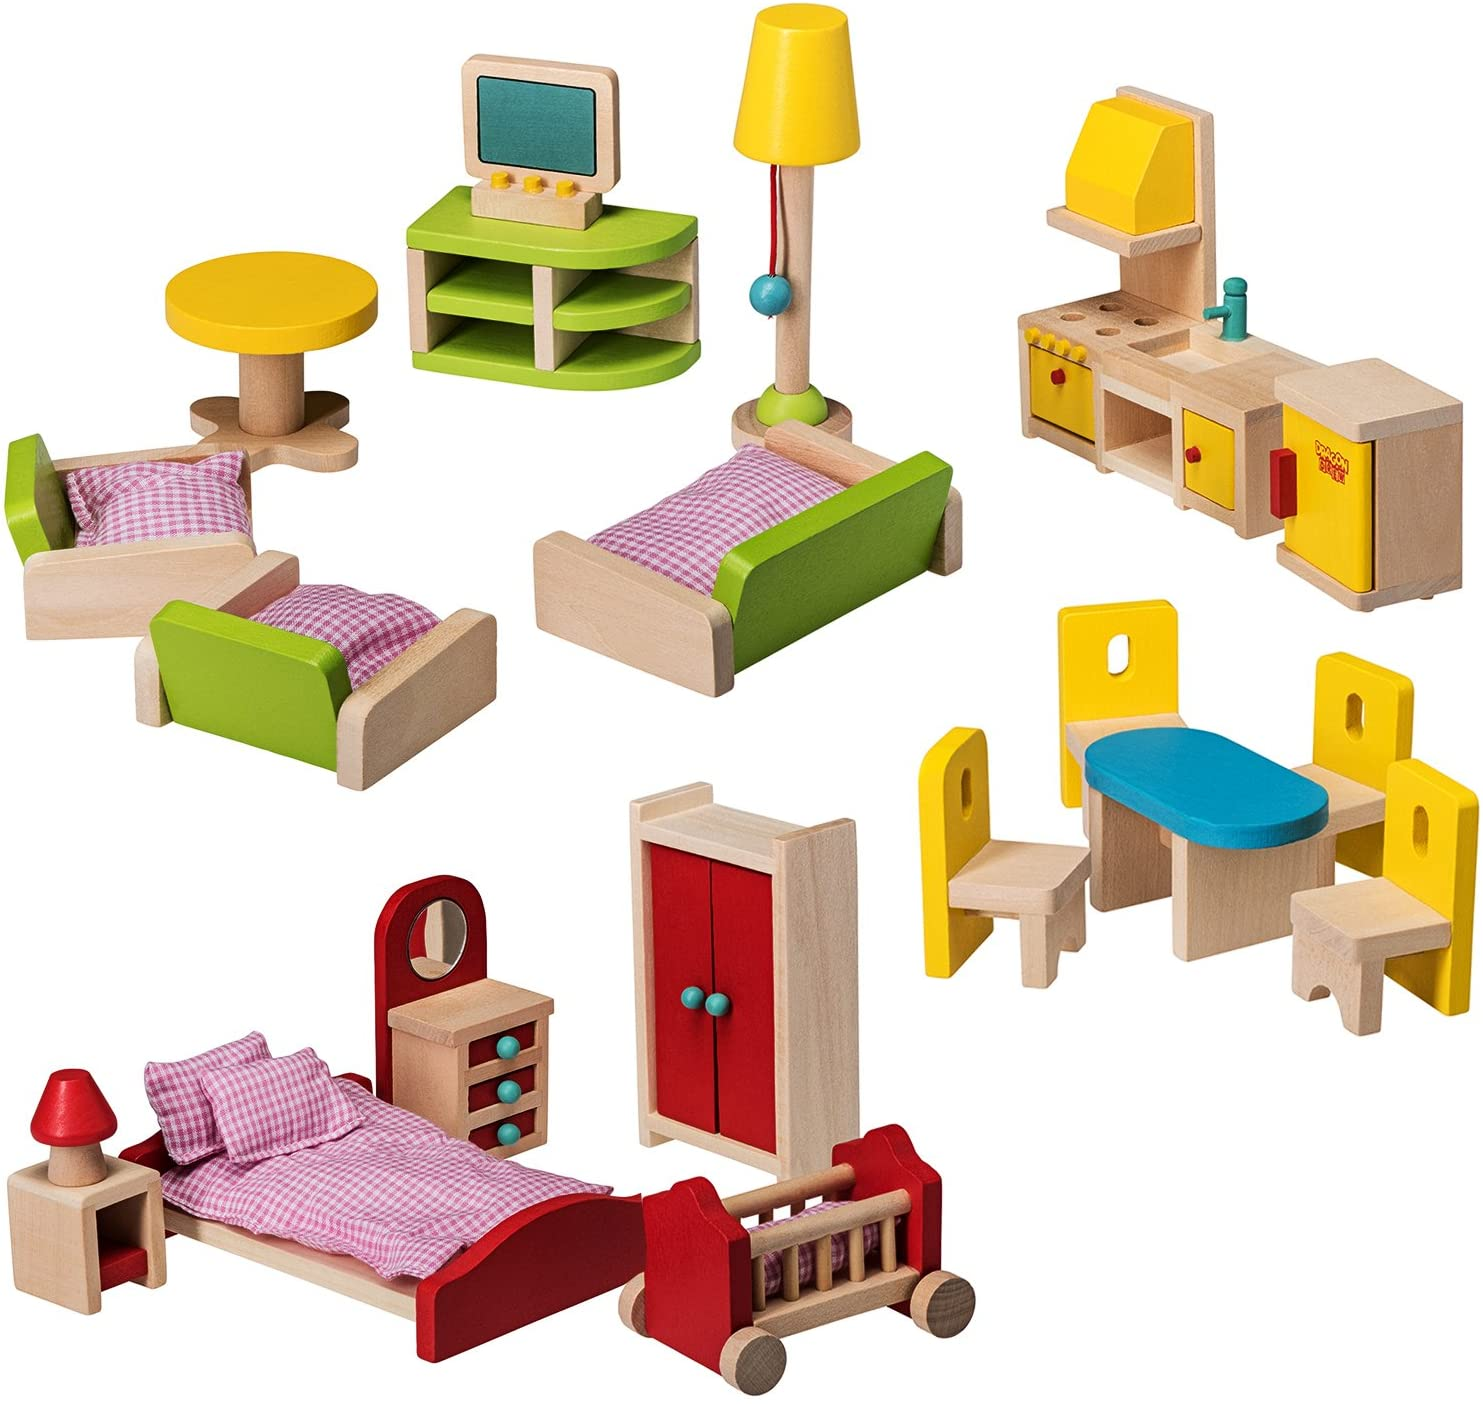 Dragon Drew Wooden Dollhouse Furniture Set - 15 Piece Kit - Living Room,  Bedroom and Kitchen Accessories, 15% Natural Wood, Nontoxic Paint, Smooth